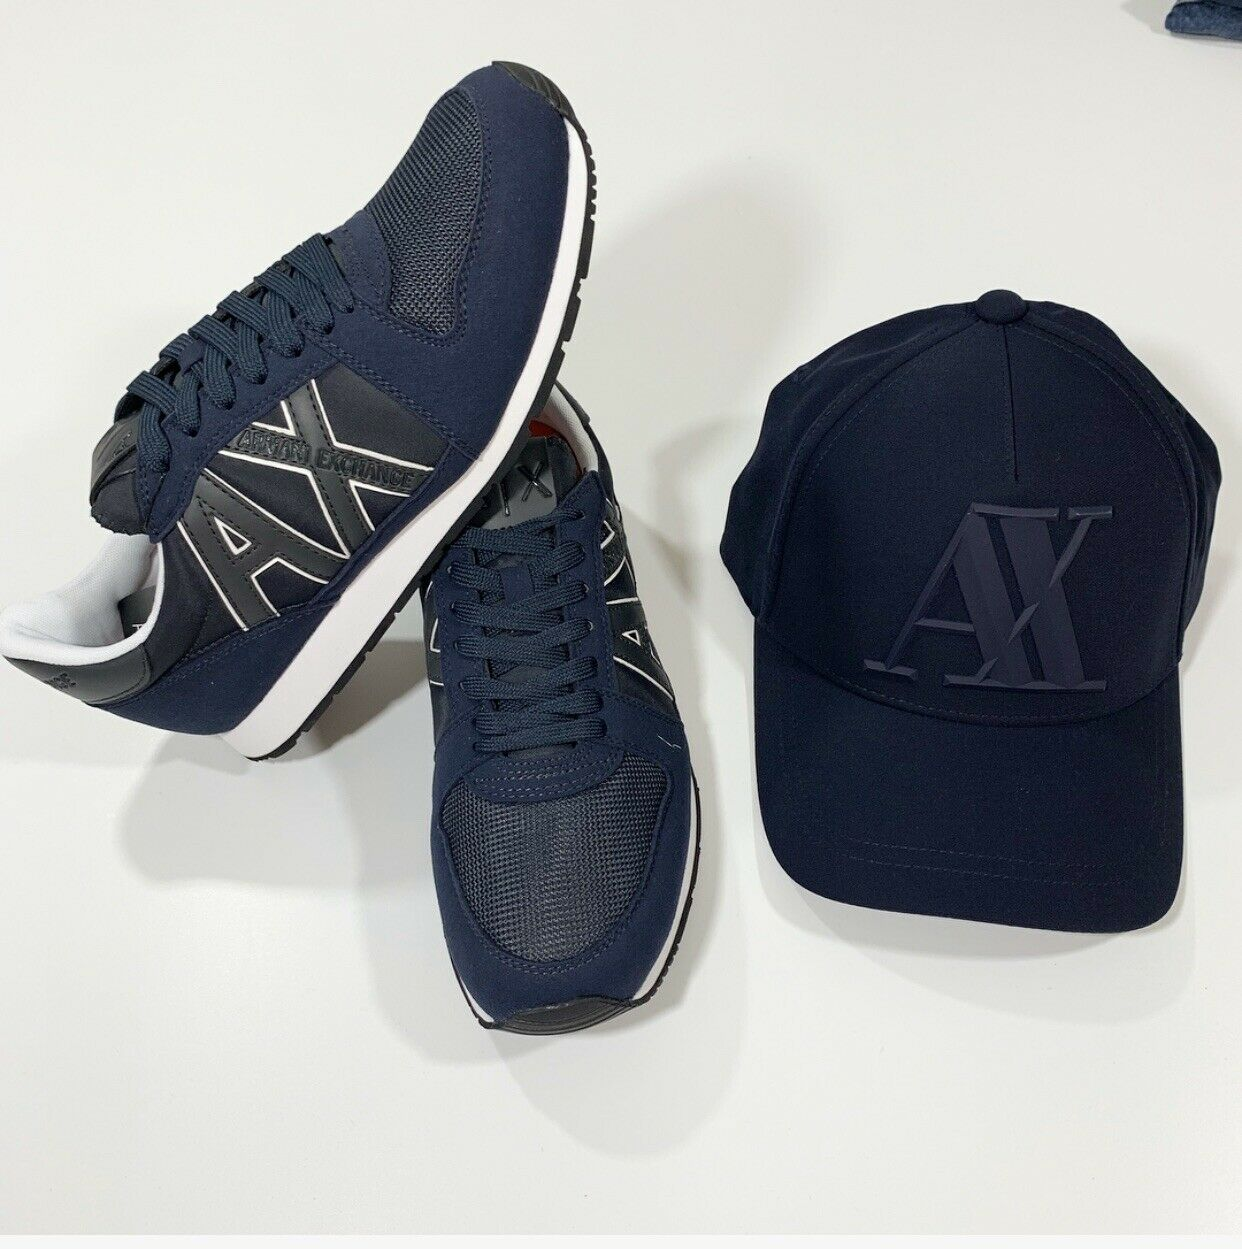 27f3b4c606 ARMANI EXCHANGE A X LOGO Mens Sneakers size 7 + ARMANI HAT Navy bluee Low  Retro nsgmlc7695-Athletic Shoes